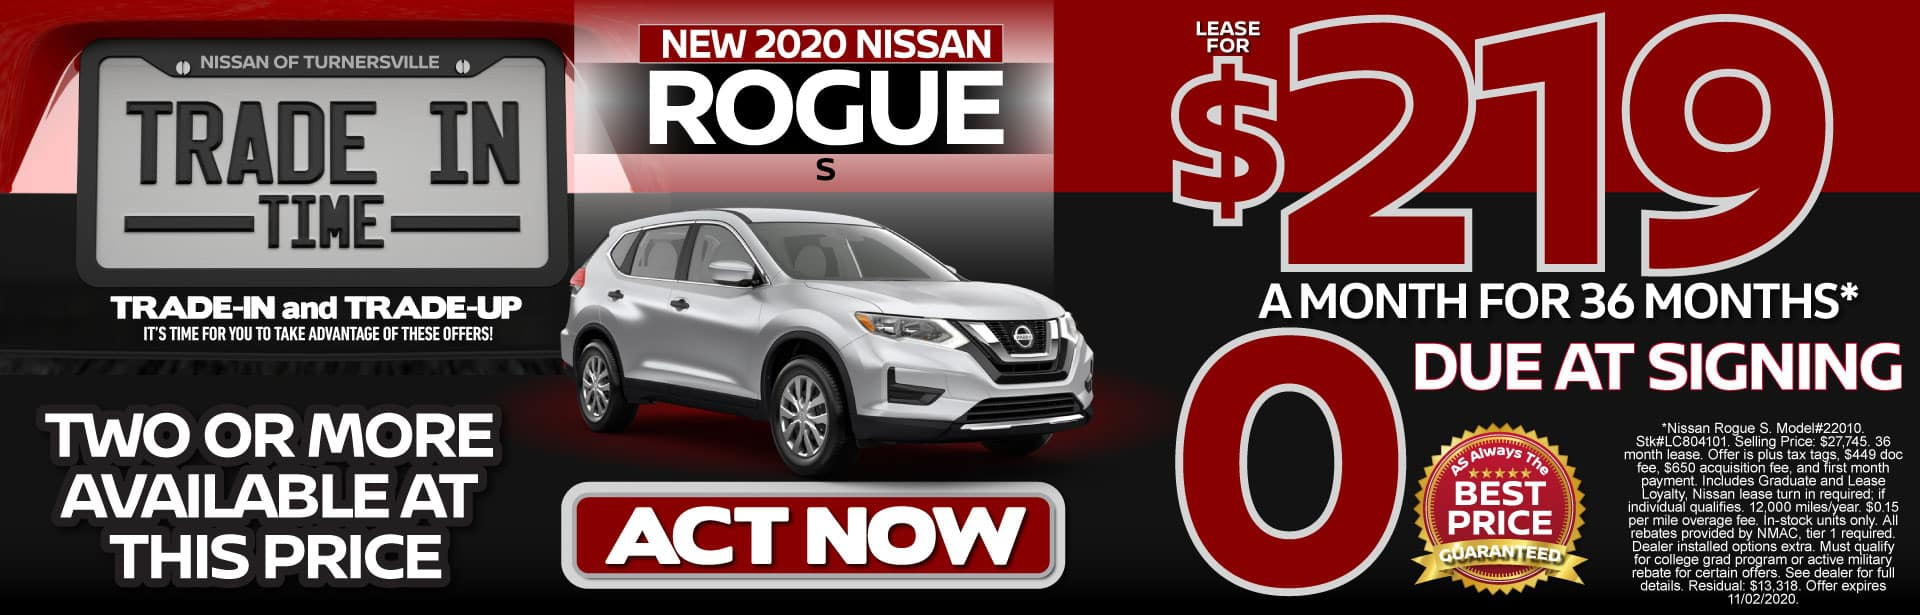 New 2020 Rogue Lease for $219 a month for 36 months   Act Now